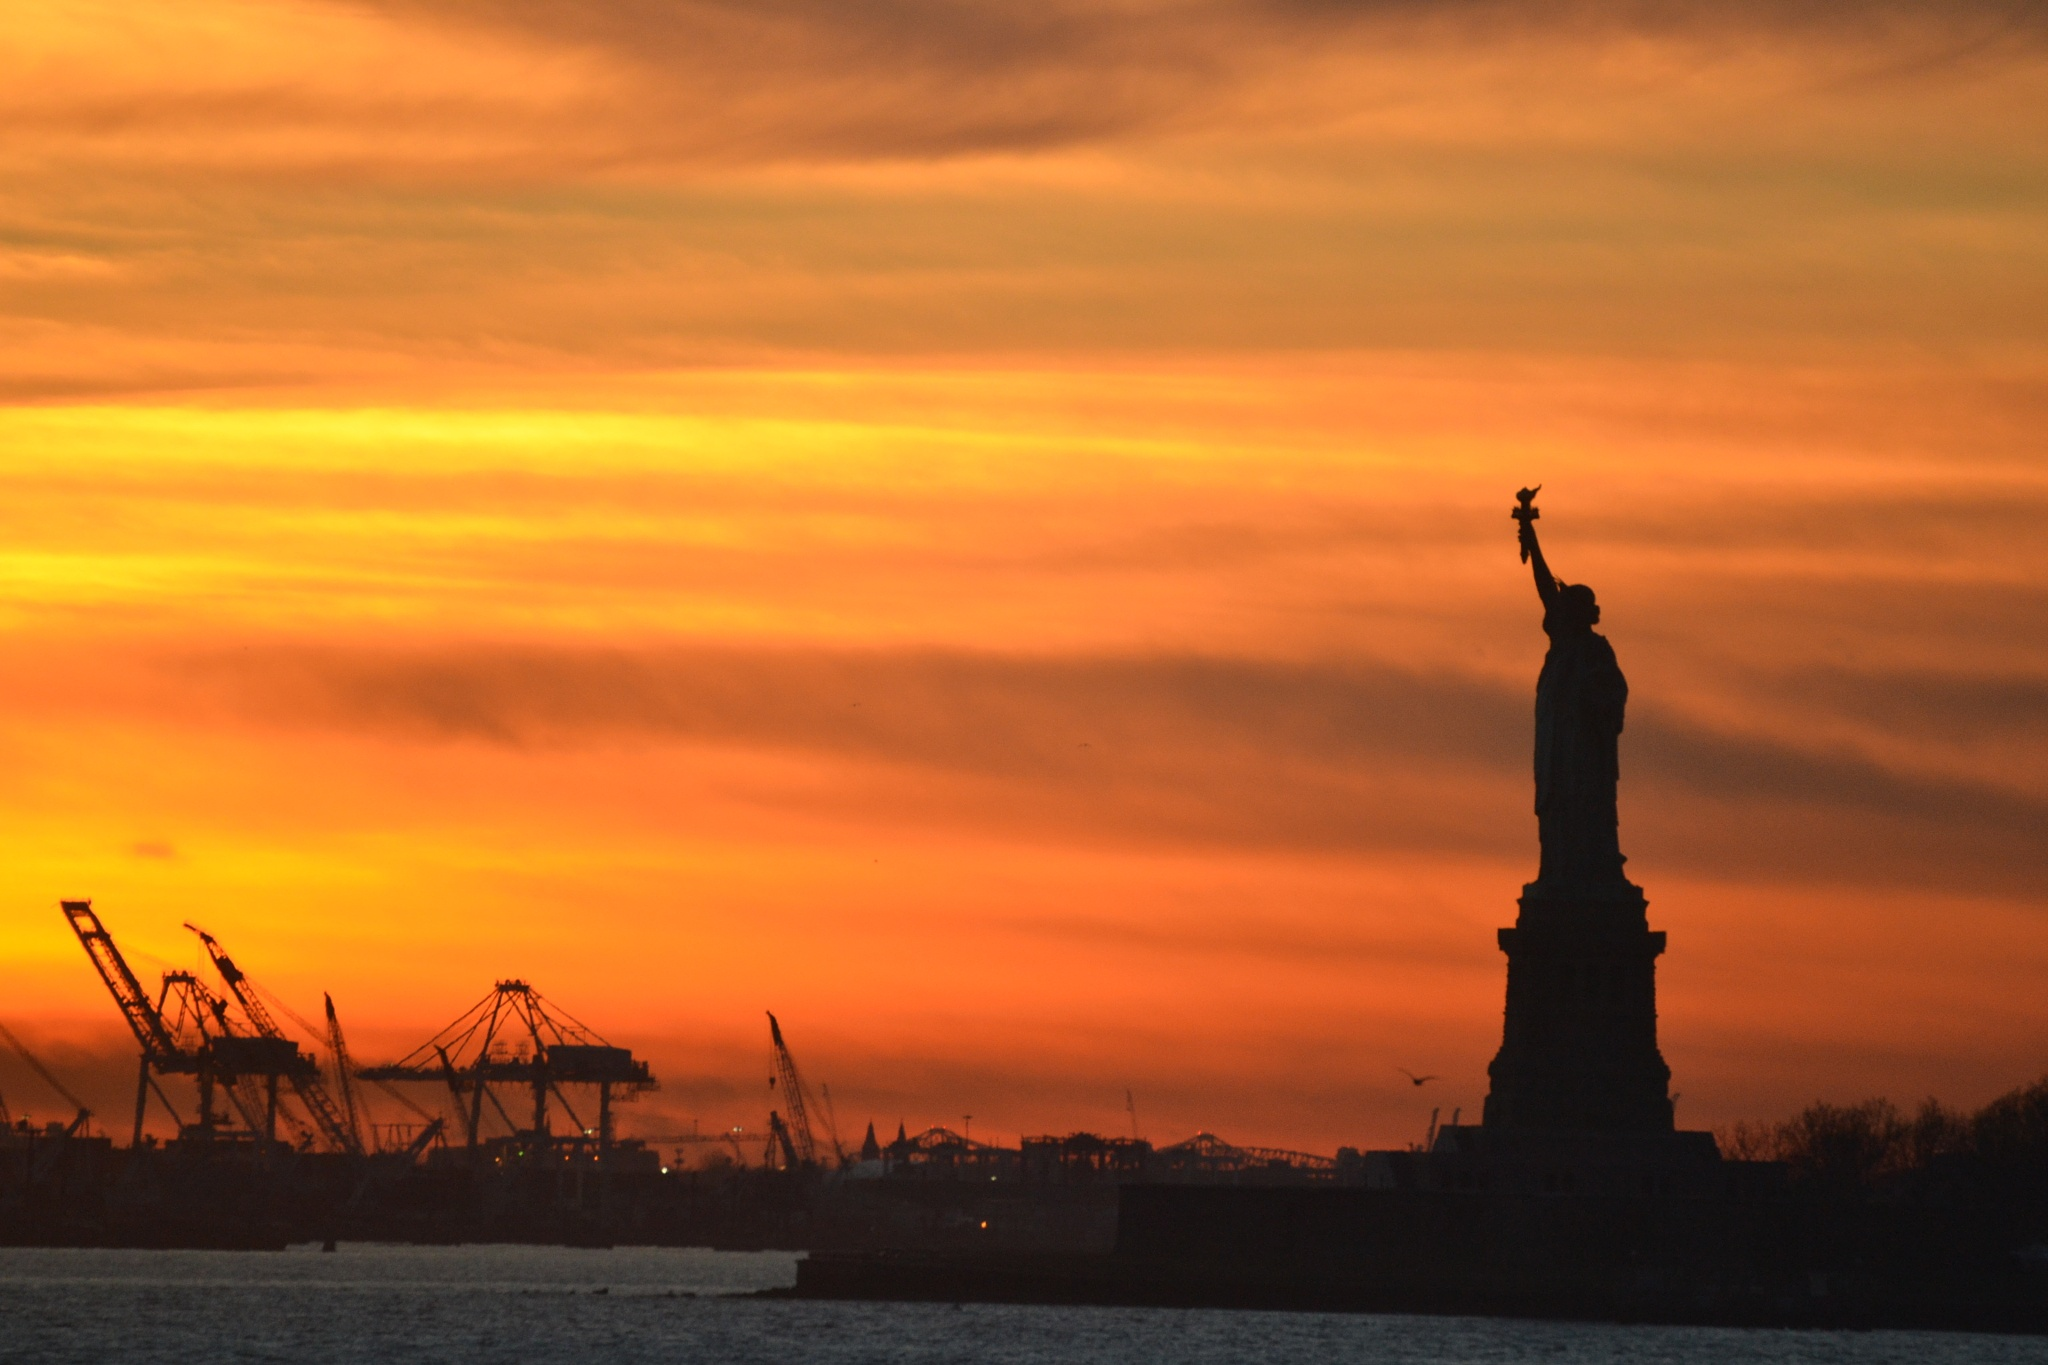 Statue of Liberty at sunset by Kathleen Hutchison